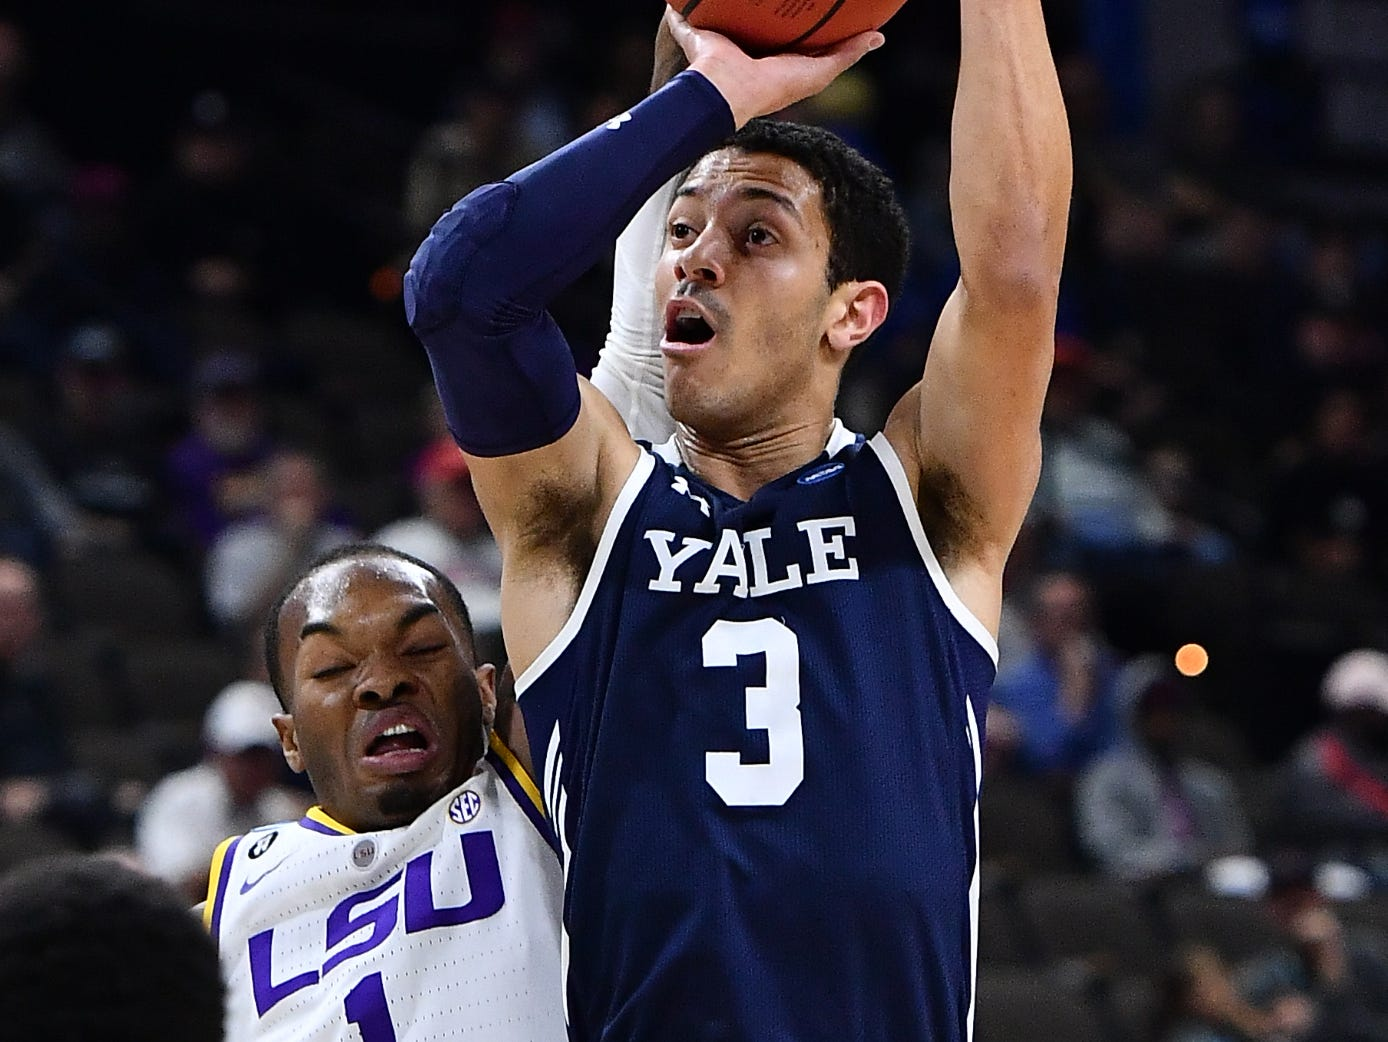 Mar 21, 2019; Jacksonville, FL, USA; Yale Bulldogs guard Alex Copeland (3) shoots against LSU Tigers guard Javonte Smart (1) during the first half in the first round of the 2019 NCAA Tournament at Jacksonville Veterans Memorial Arena. Mandatory Credit: John David Mercer-USA TODAY Sports